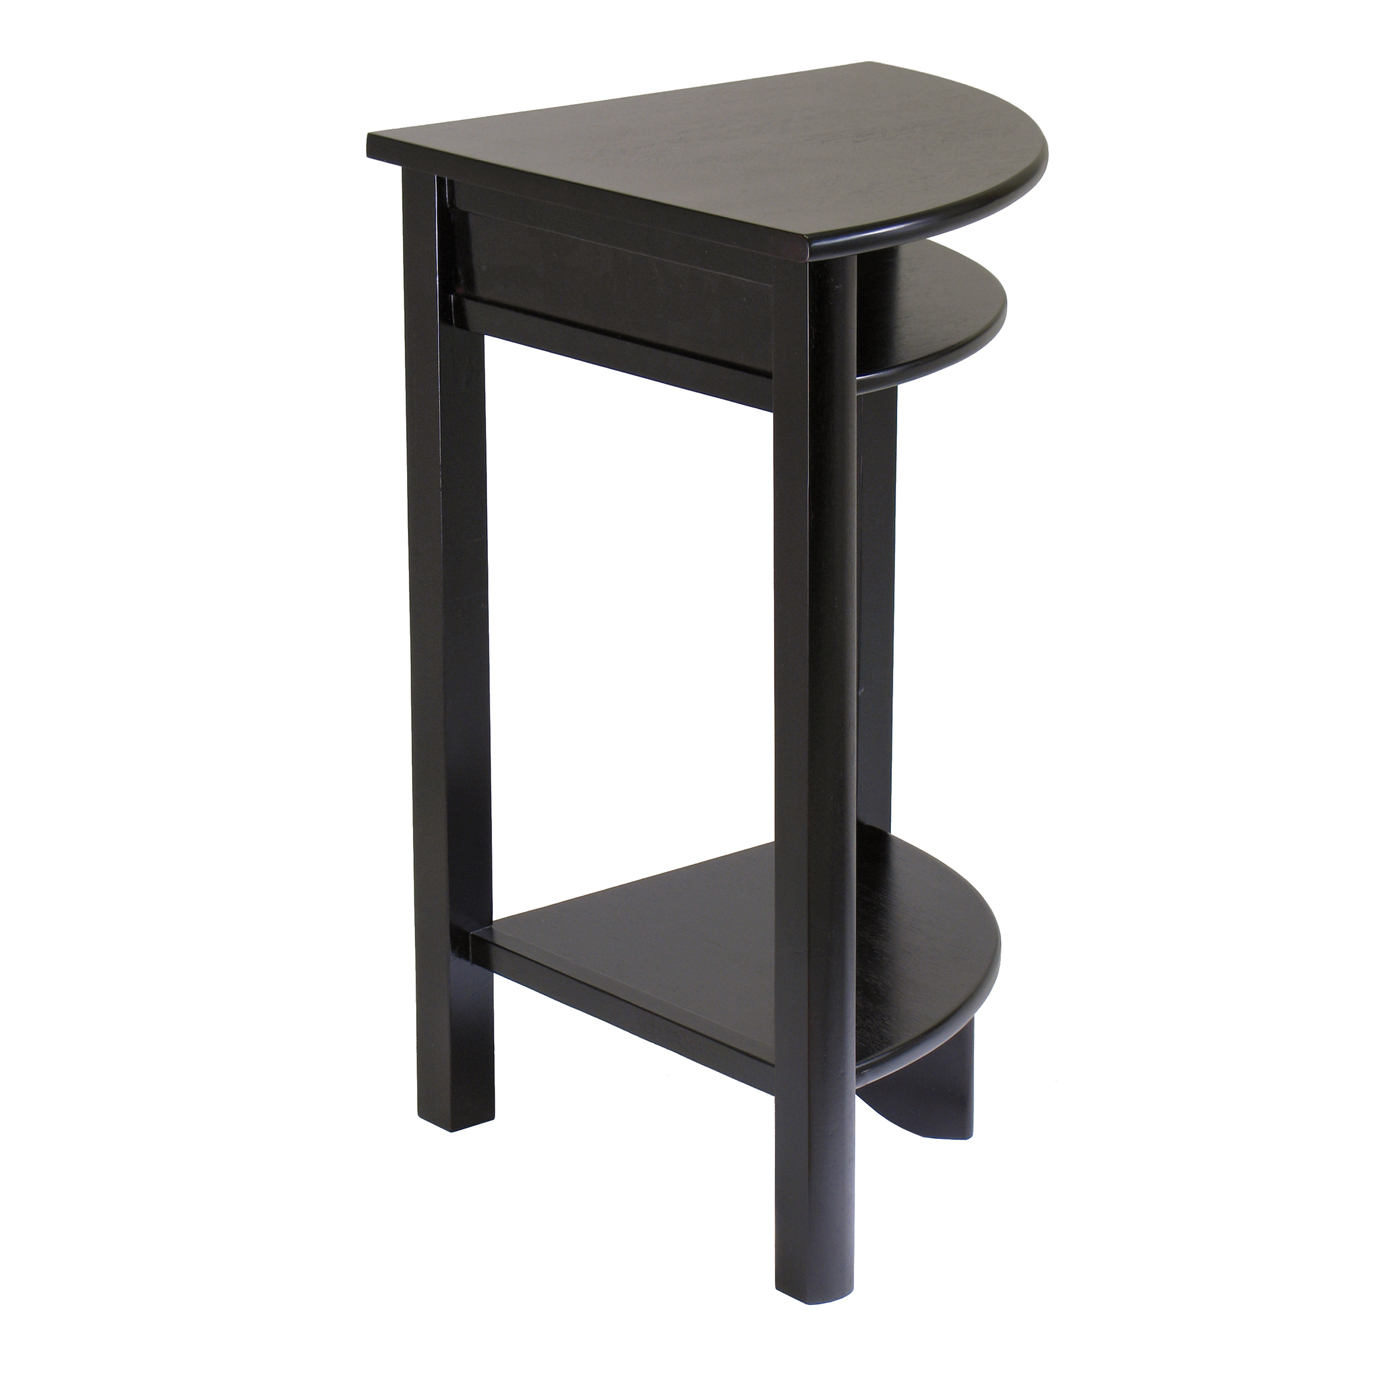 corner accent table white various options for with storage design home tall black couches under marine style lighting small side round retro orange chair rolling tool box marble